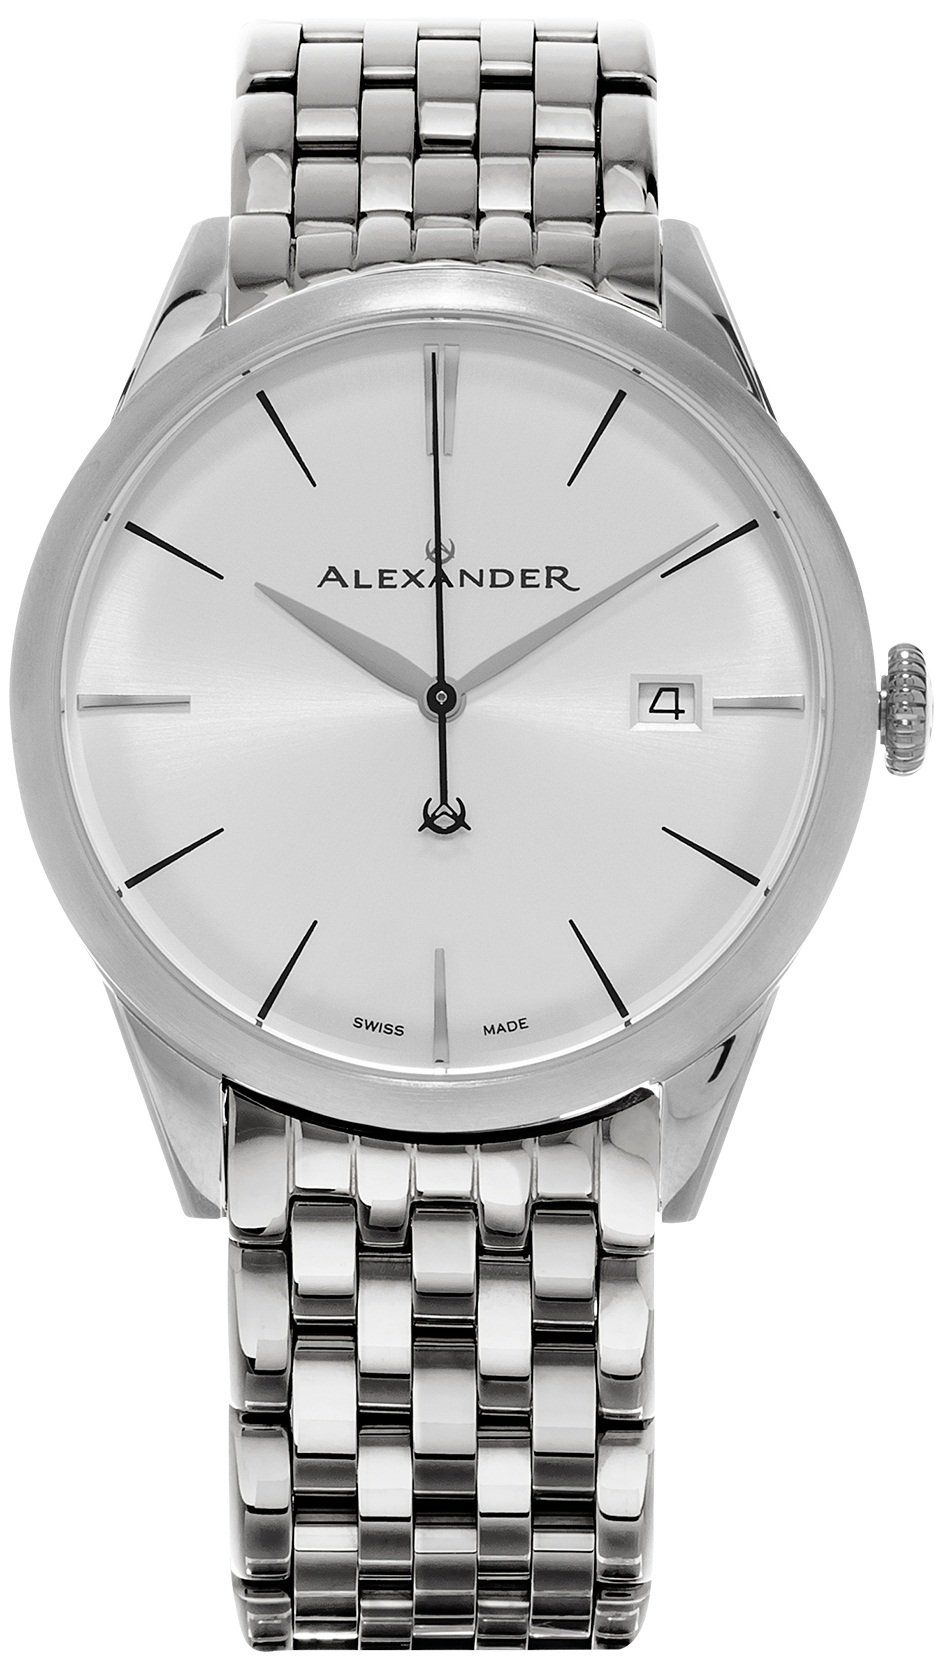 Alexander heroic sophisticate wrist watch for men silver white